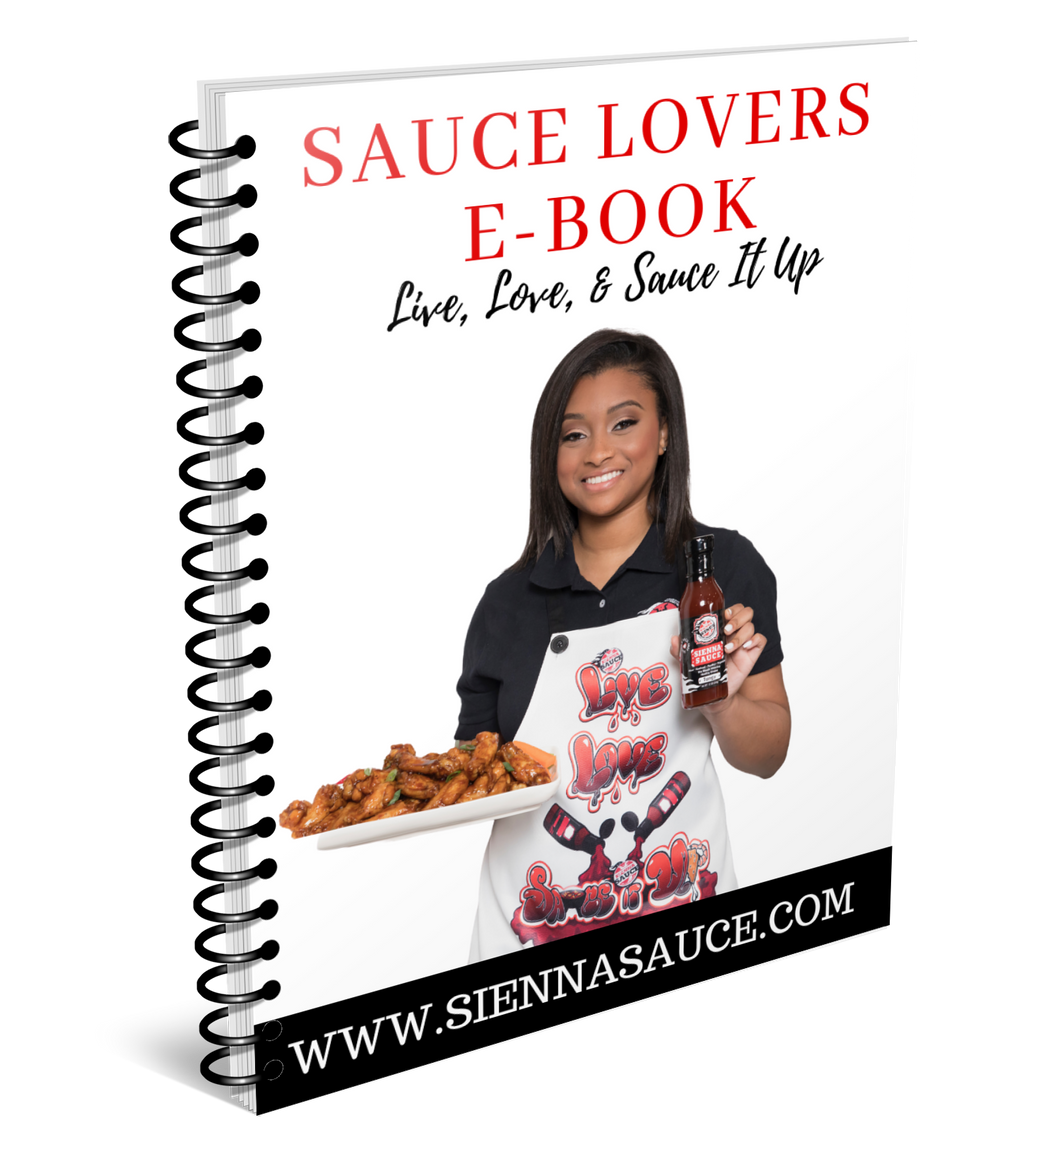 Sauce Lovers E-Book